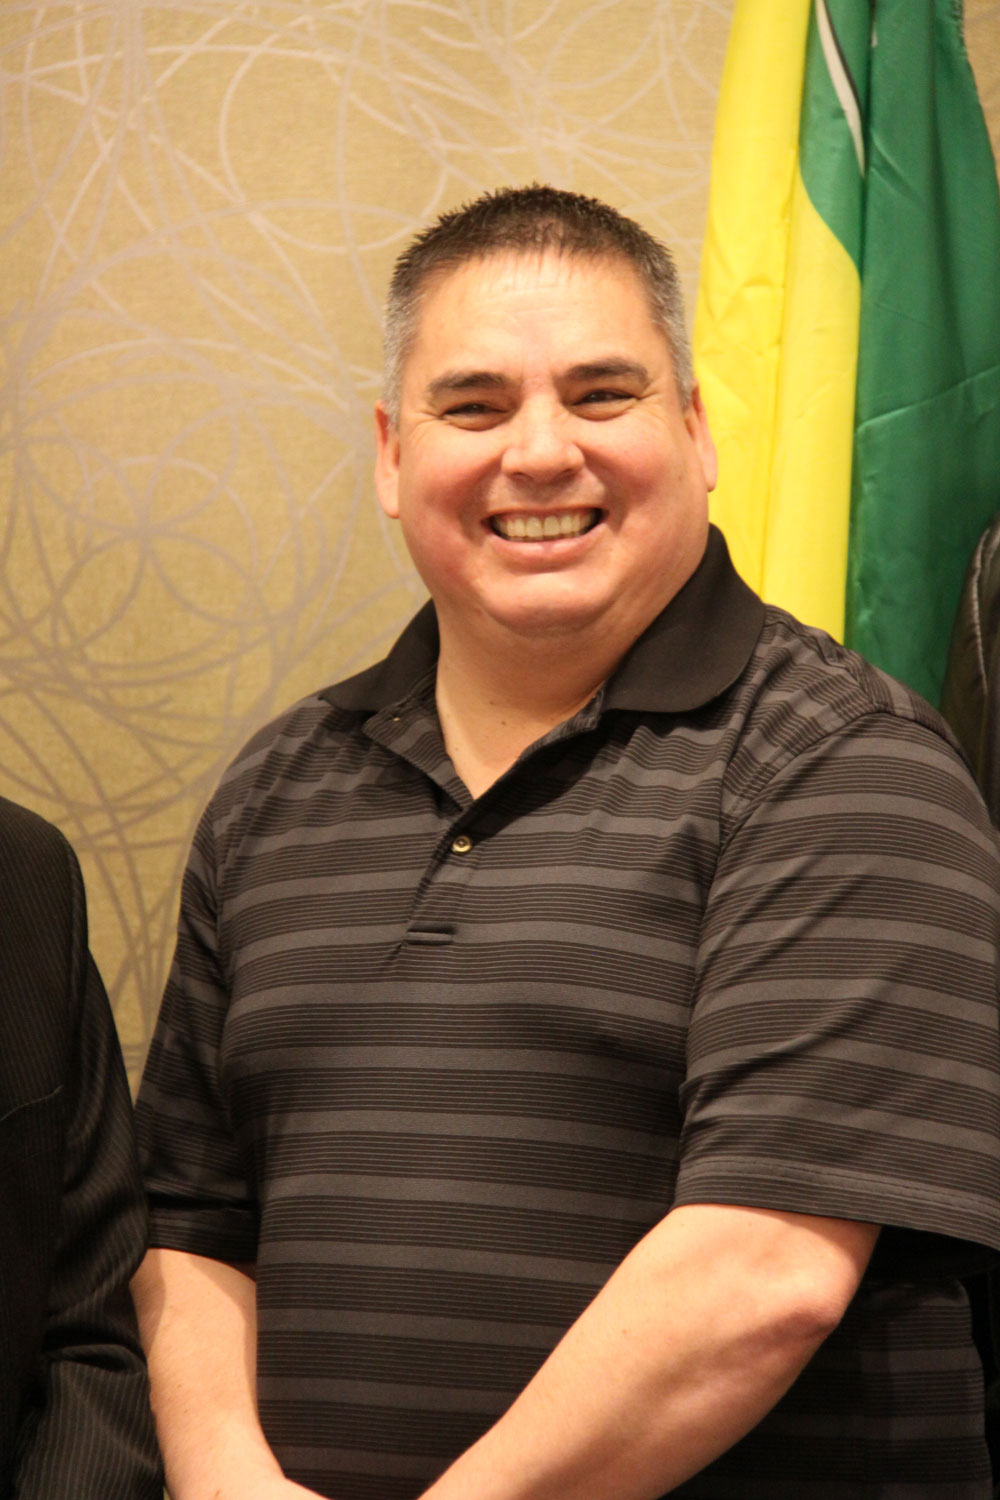 Northern Village of La Loche Mayor Robert St. Pierre